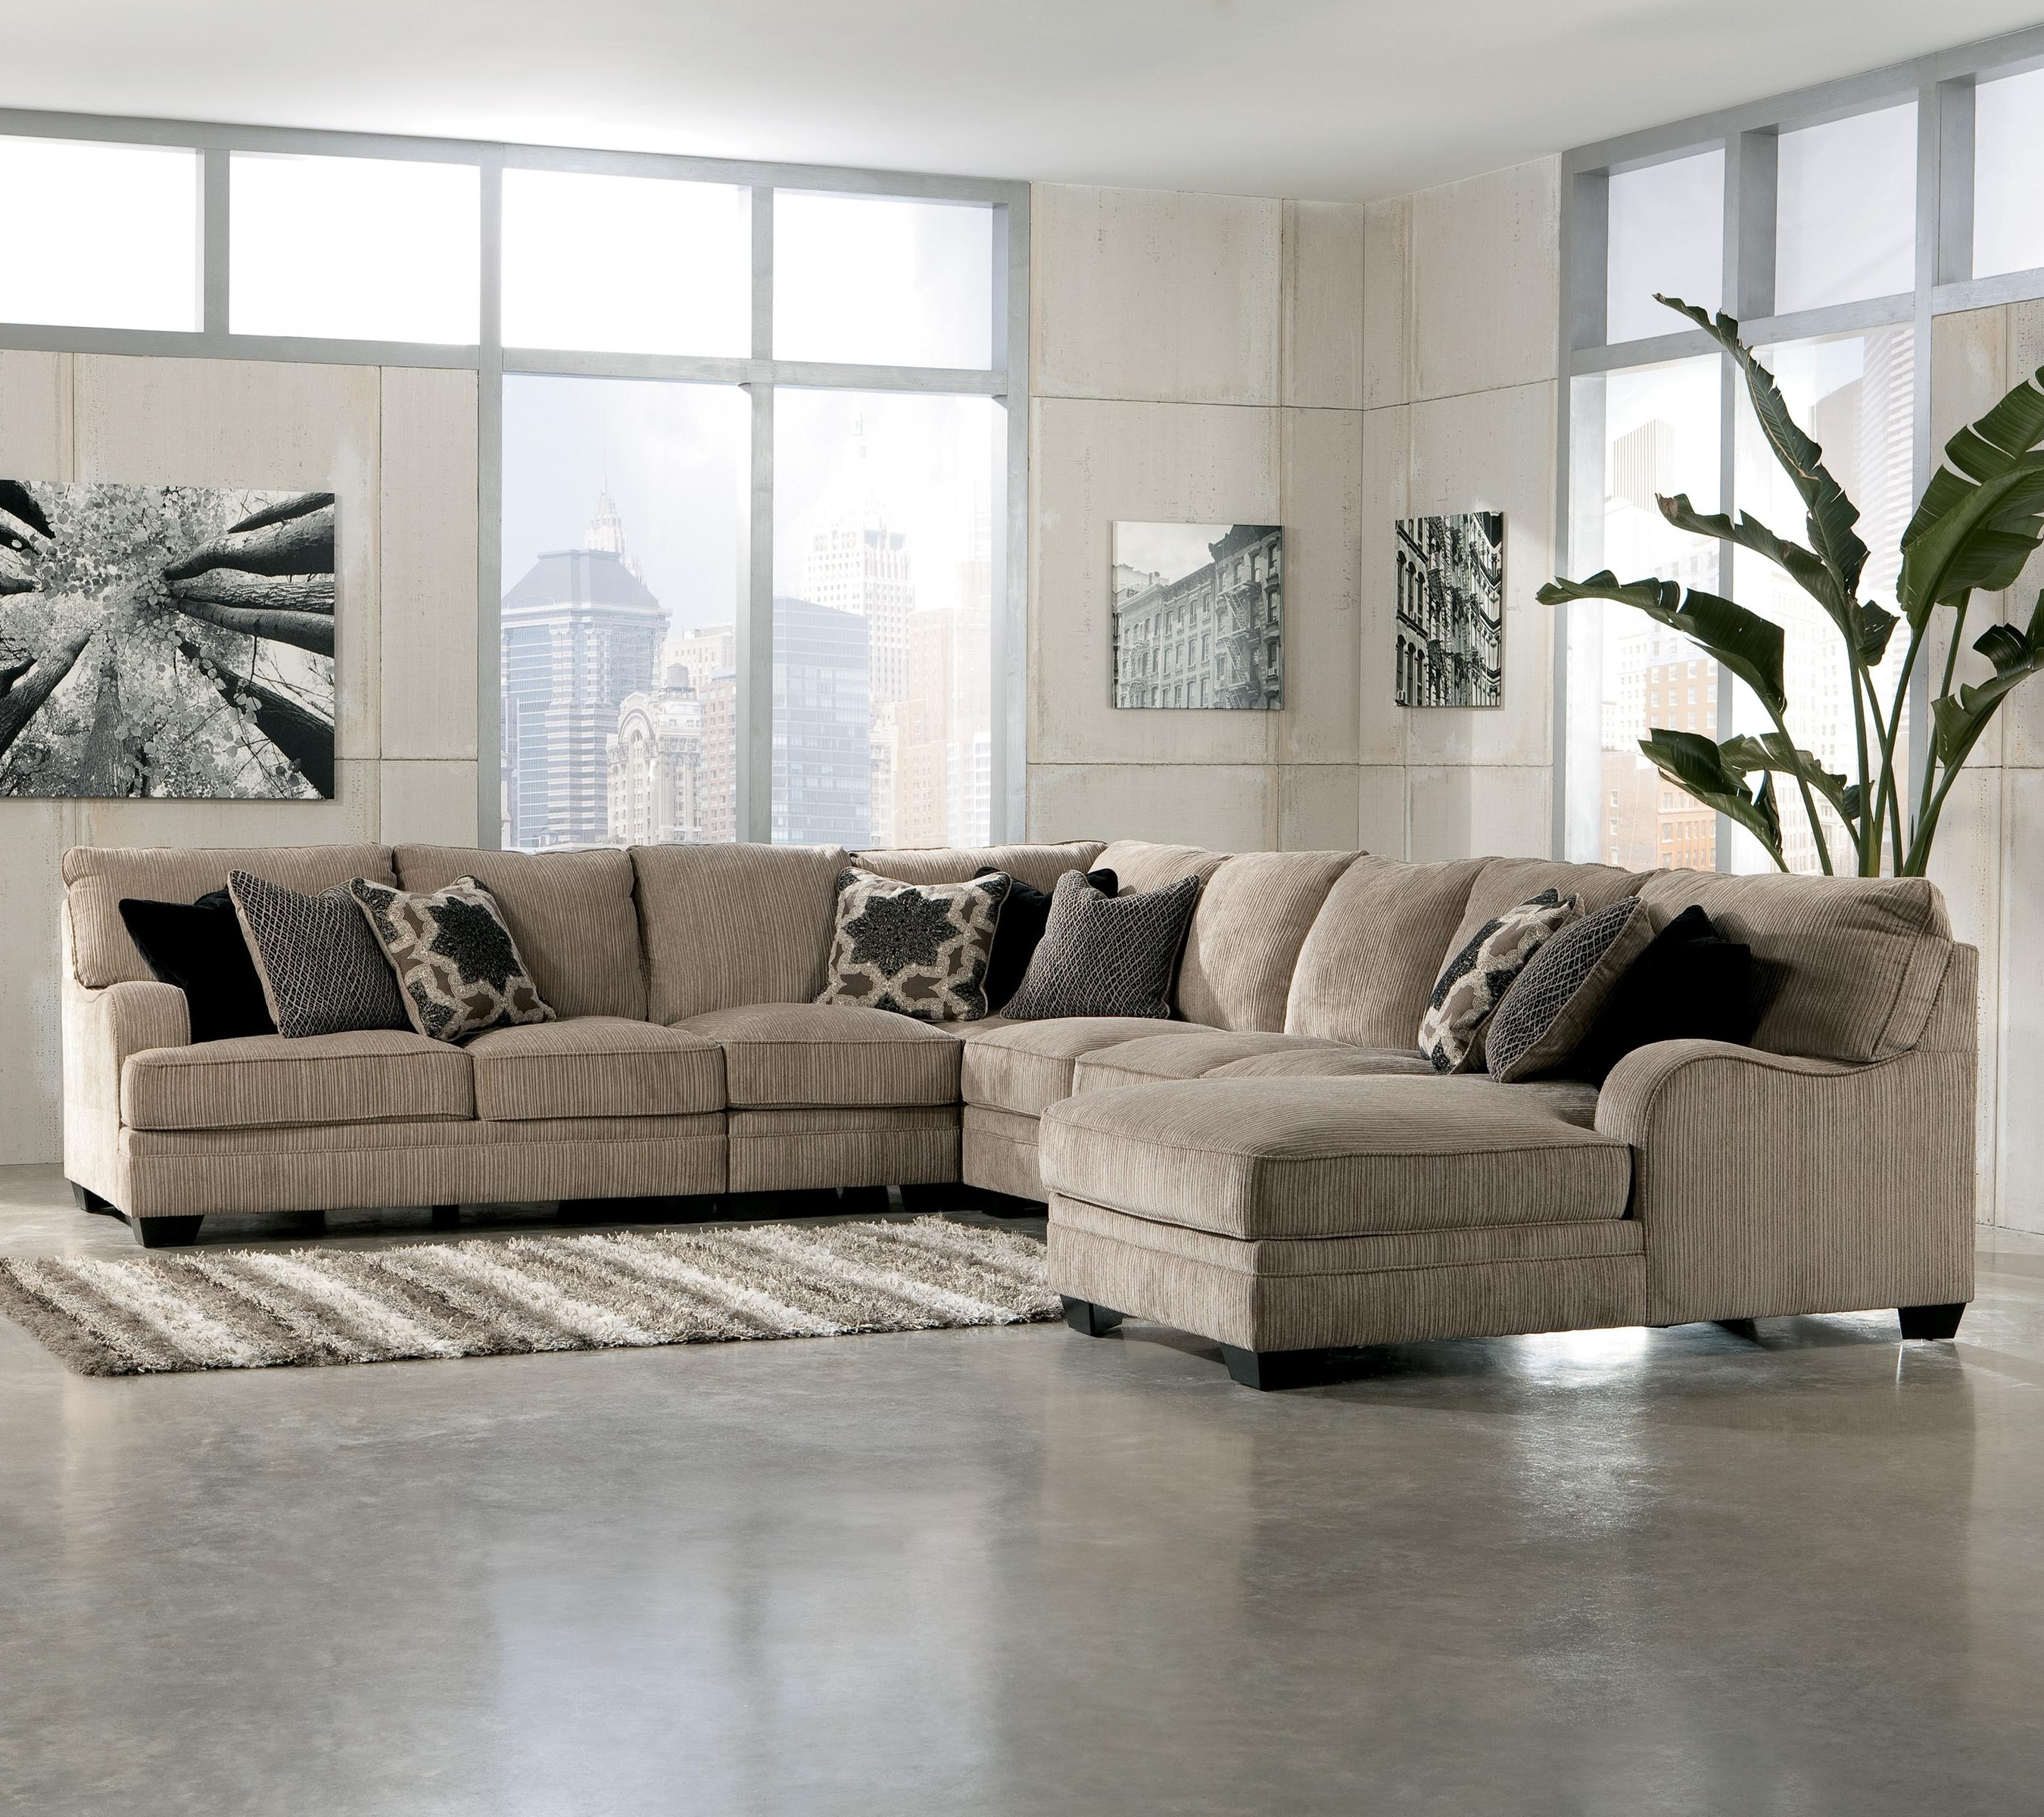 Preferred 4 Piece Sectional Sofas With Chaise Throughout Living Room Sectional: Katisha 4 Piece Sectionalashley (View 12 of 15)